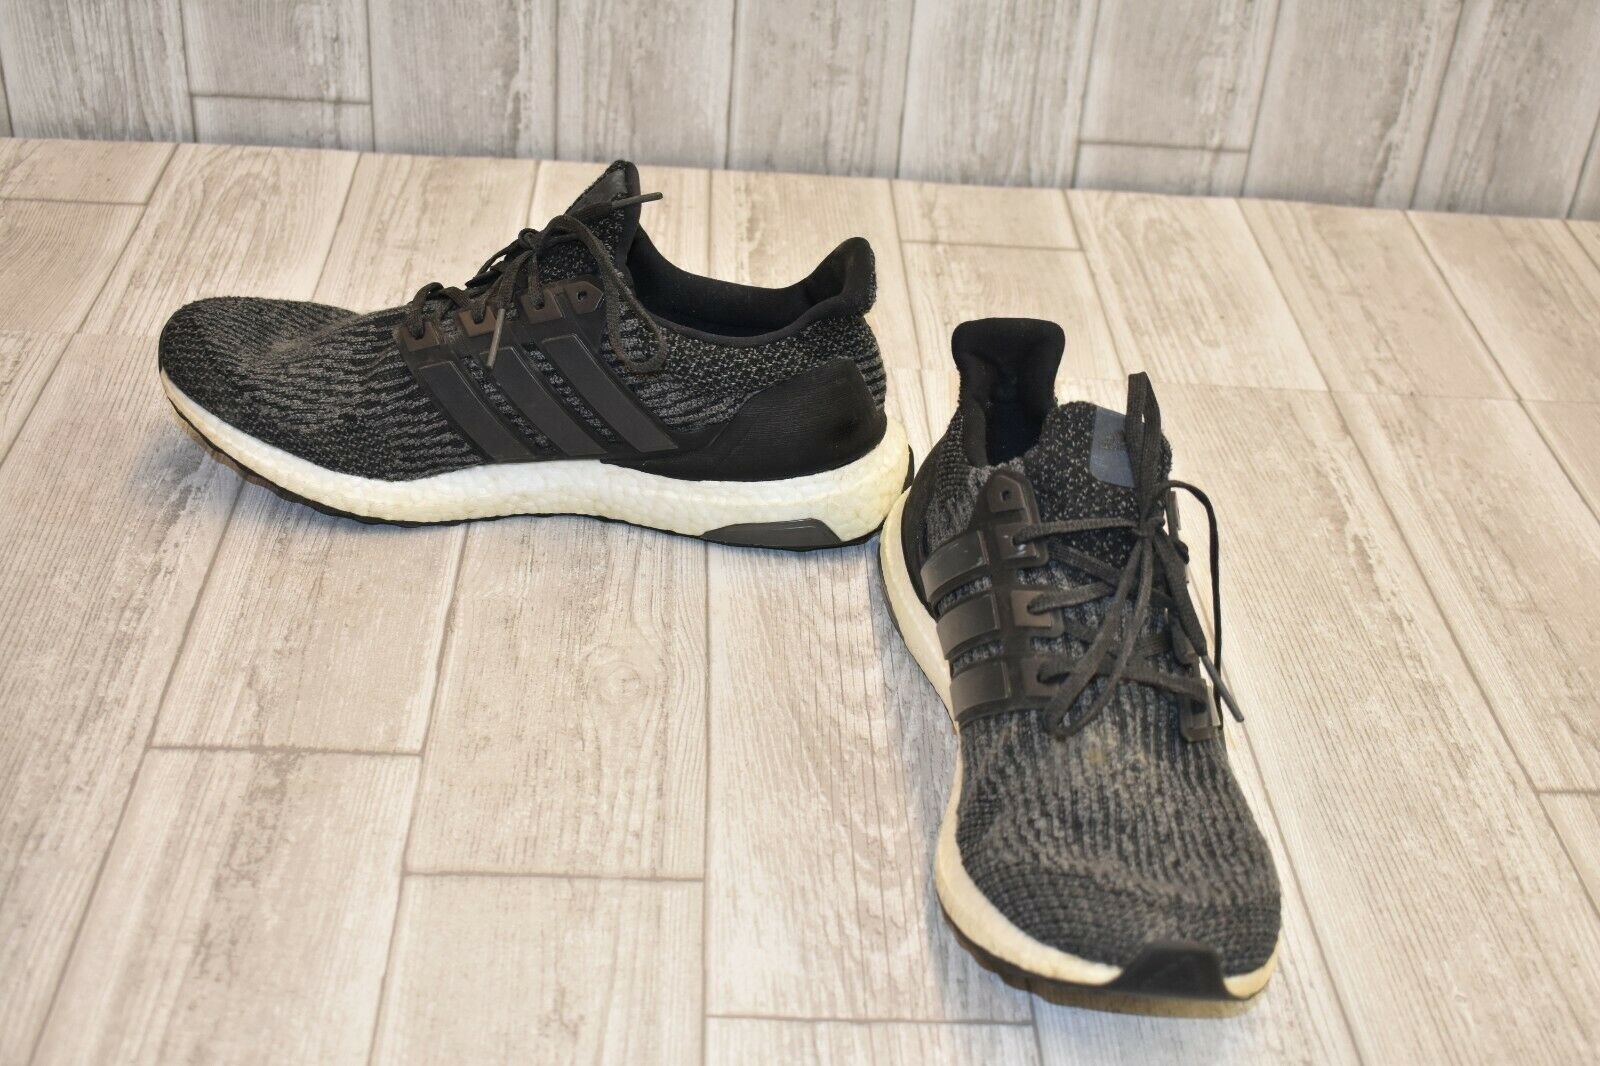 Adidas Ultra Boost 3.0 Running shoes - Men's Size 13 - Black